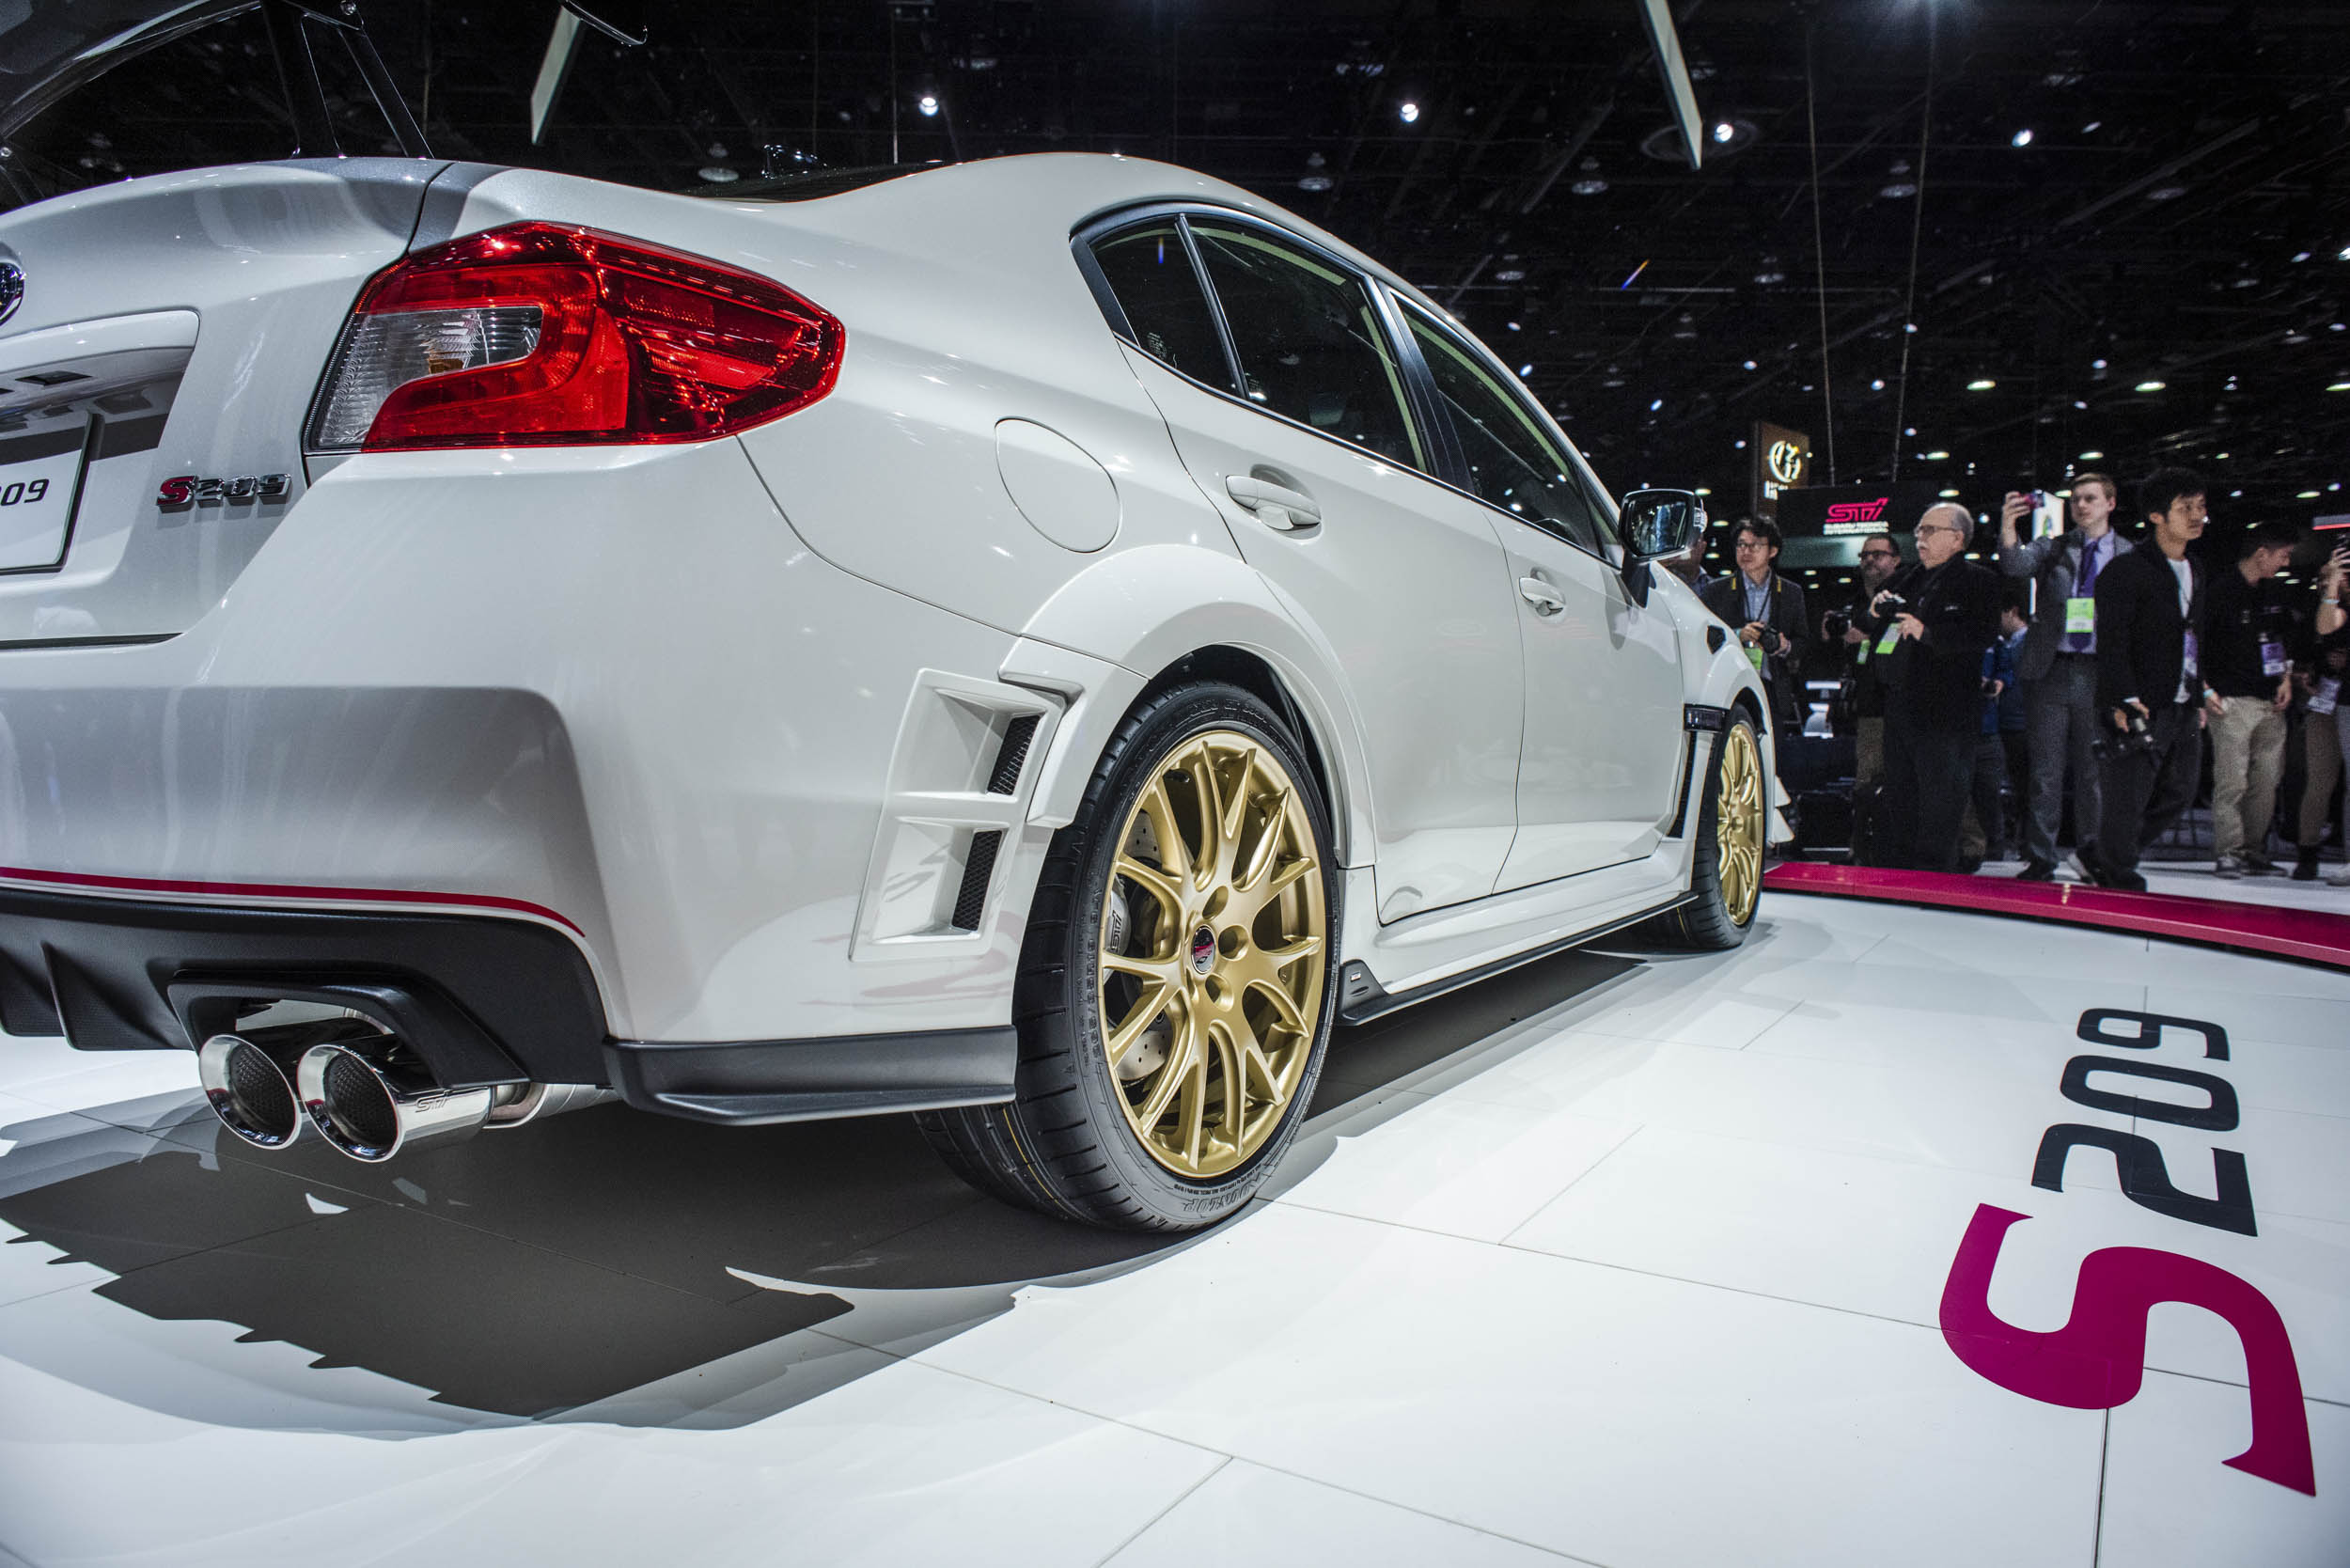 2020 Subaru WRX STI S209 low rear 3/4